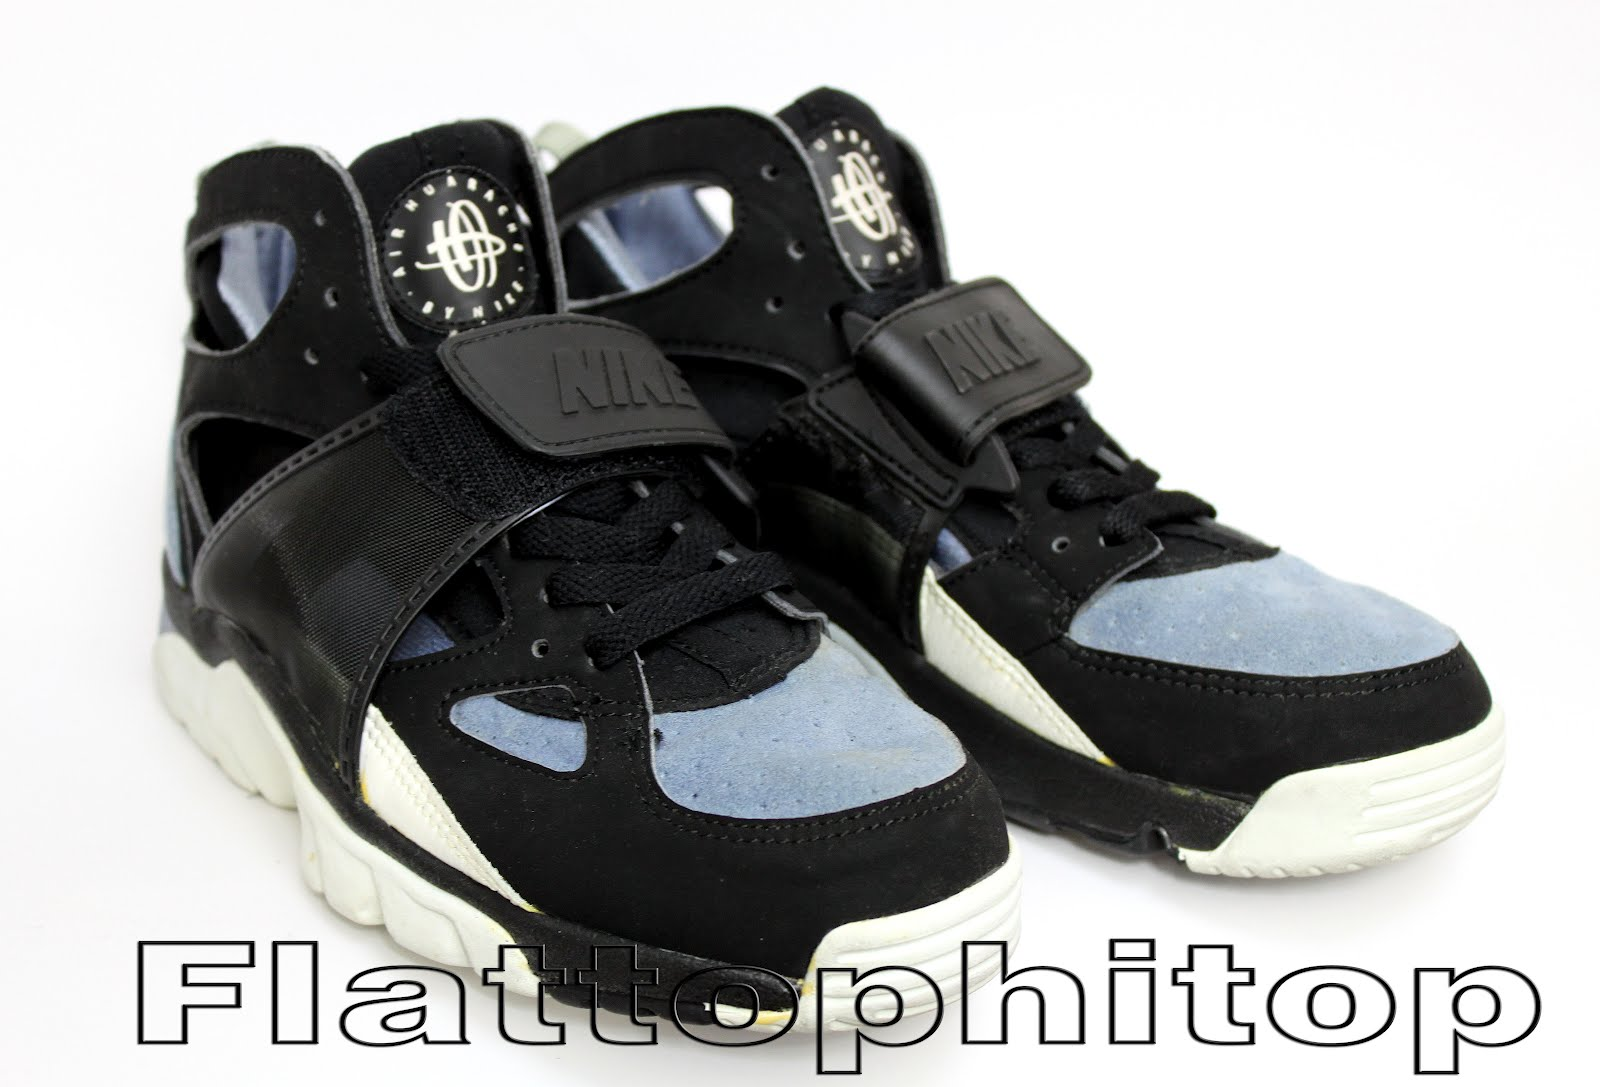 reputable site 53f98 d6bfd nike huarache with strap